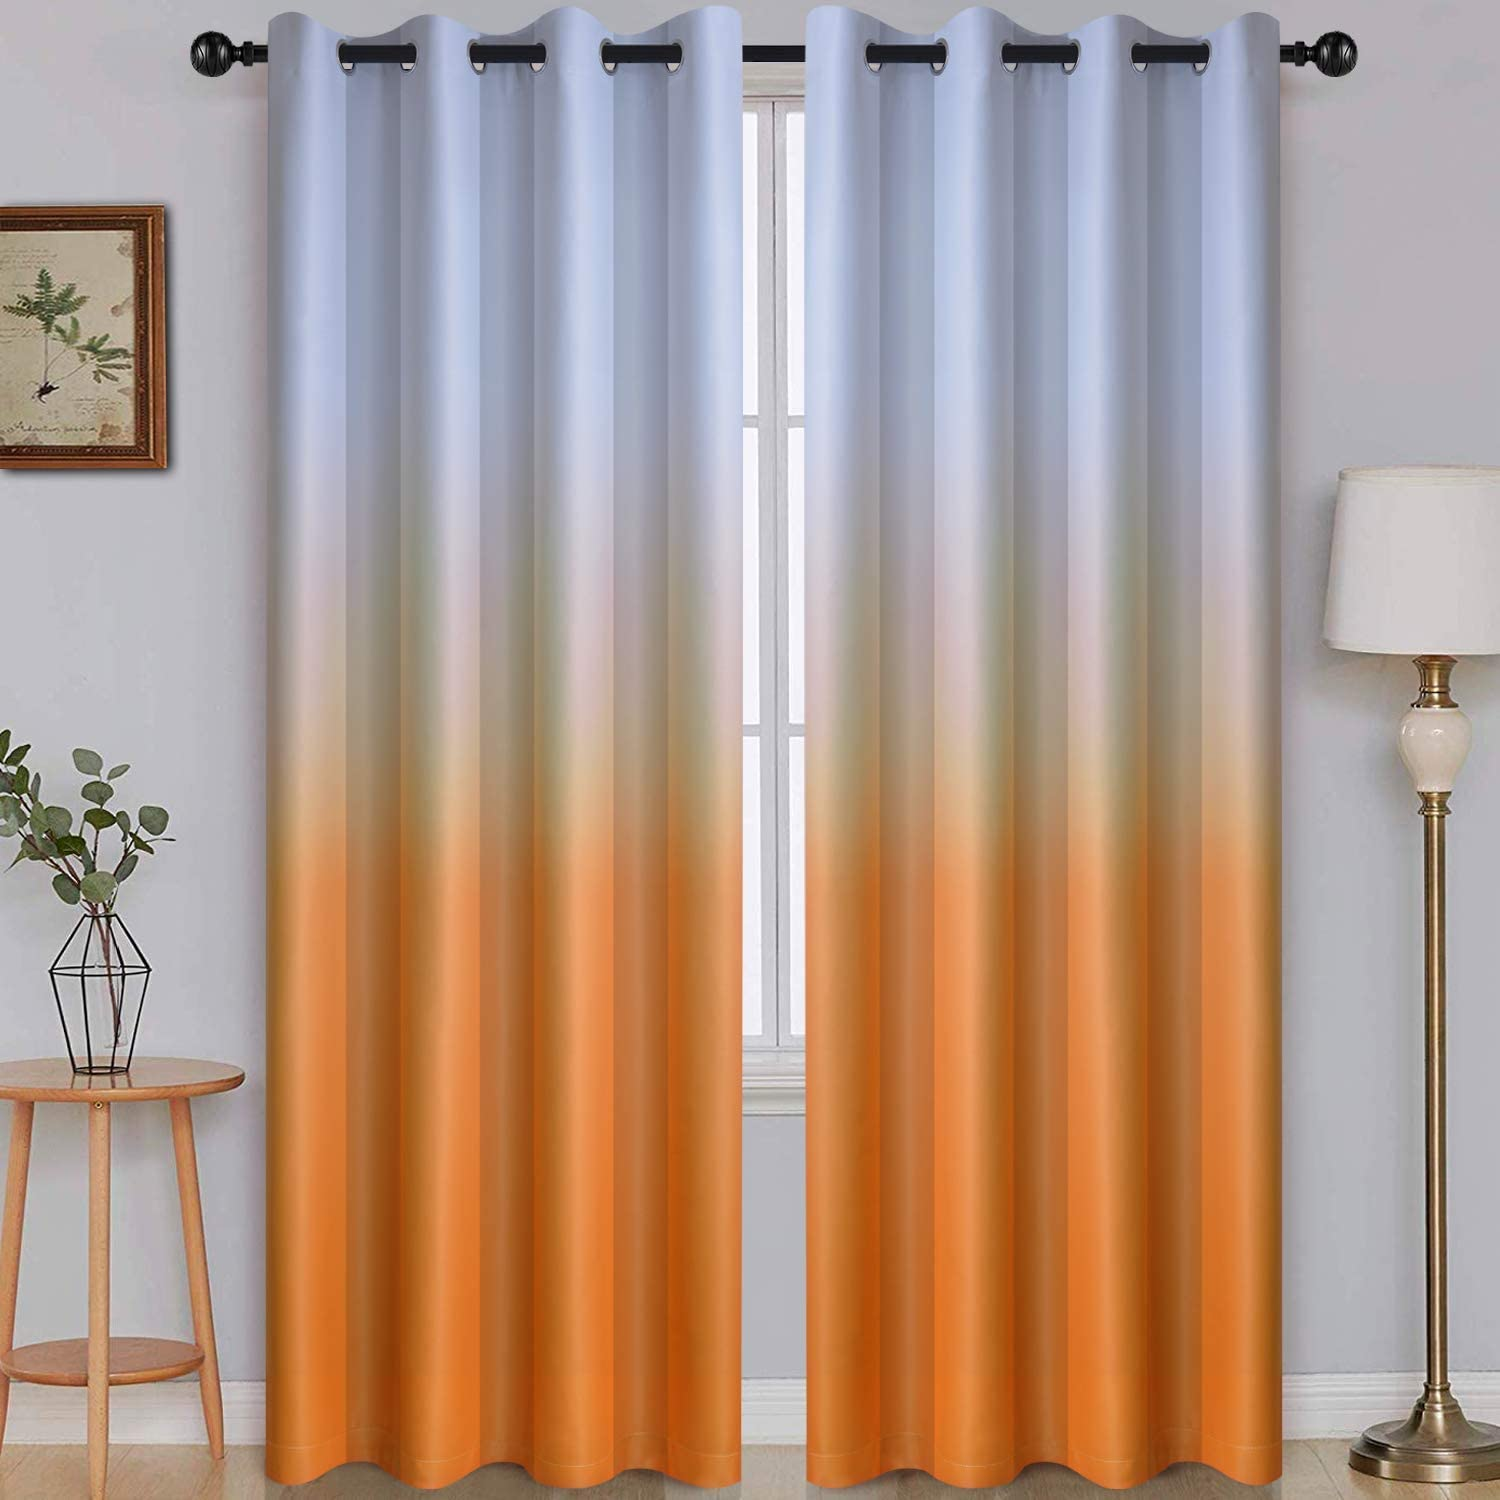 Ombre Room Darkening Curtains for Bedroom, Gradient Grey White to Orange Light Blocking Thermal Insulated Grommet Window Curtains /Drapes for Living Room ,2 Panels, 52x96 inches Length